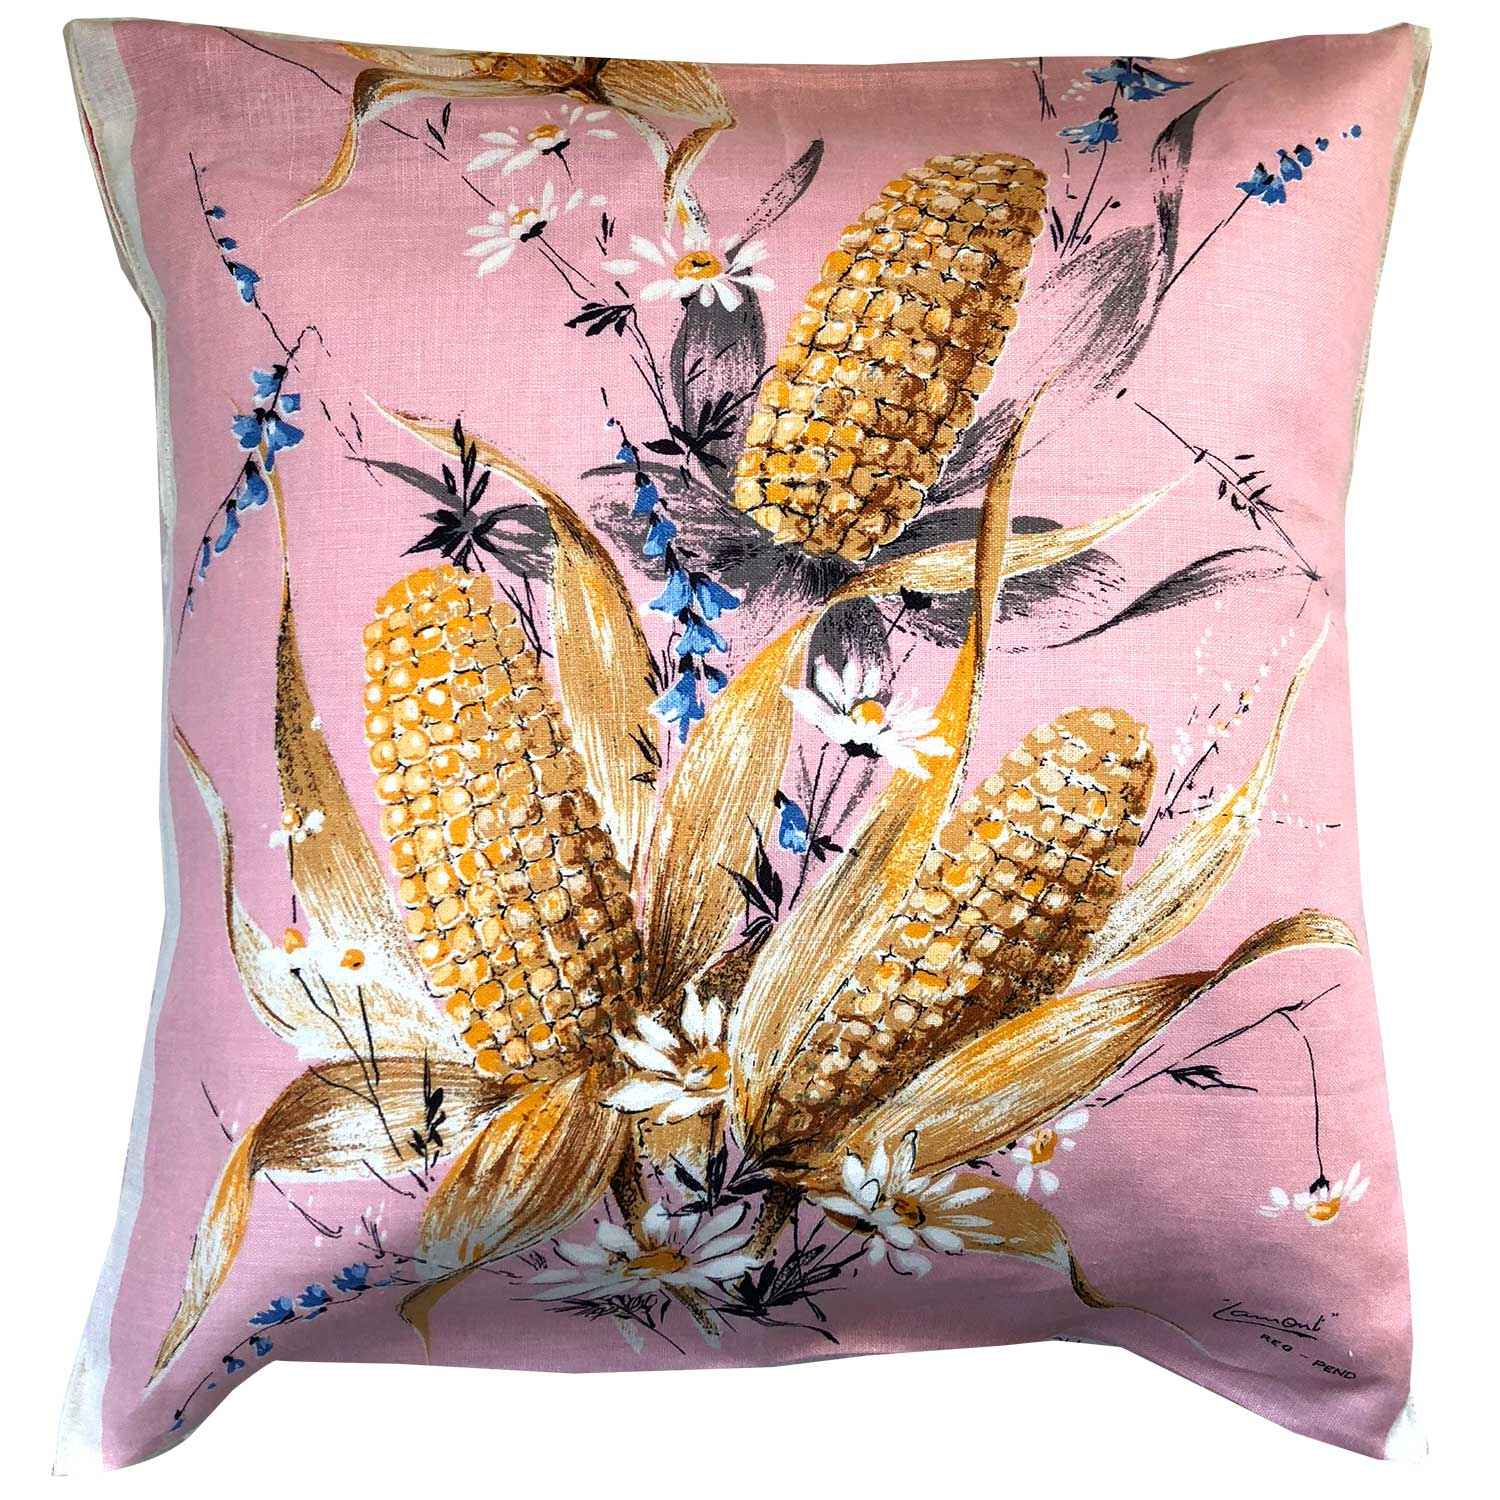 Pale pink and ears of corn